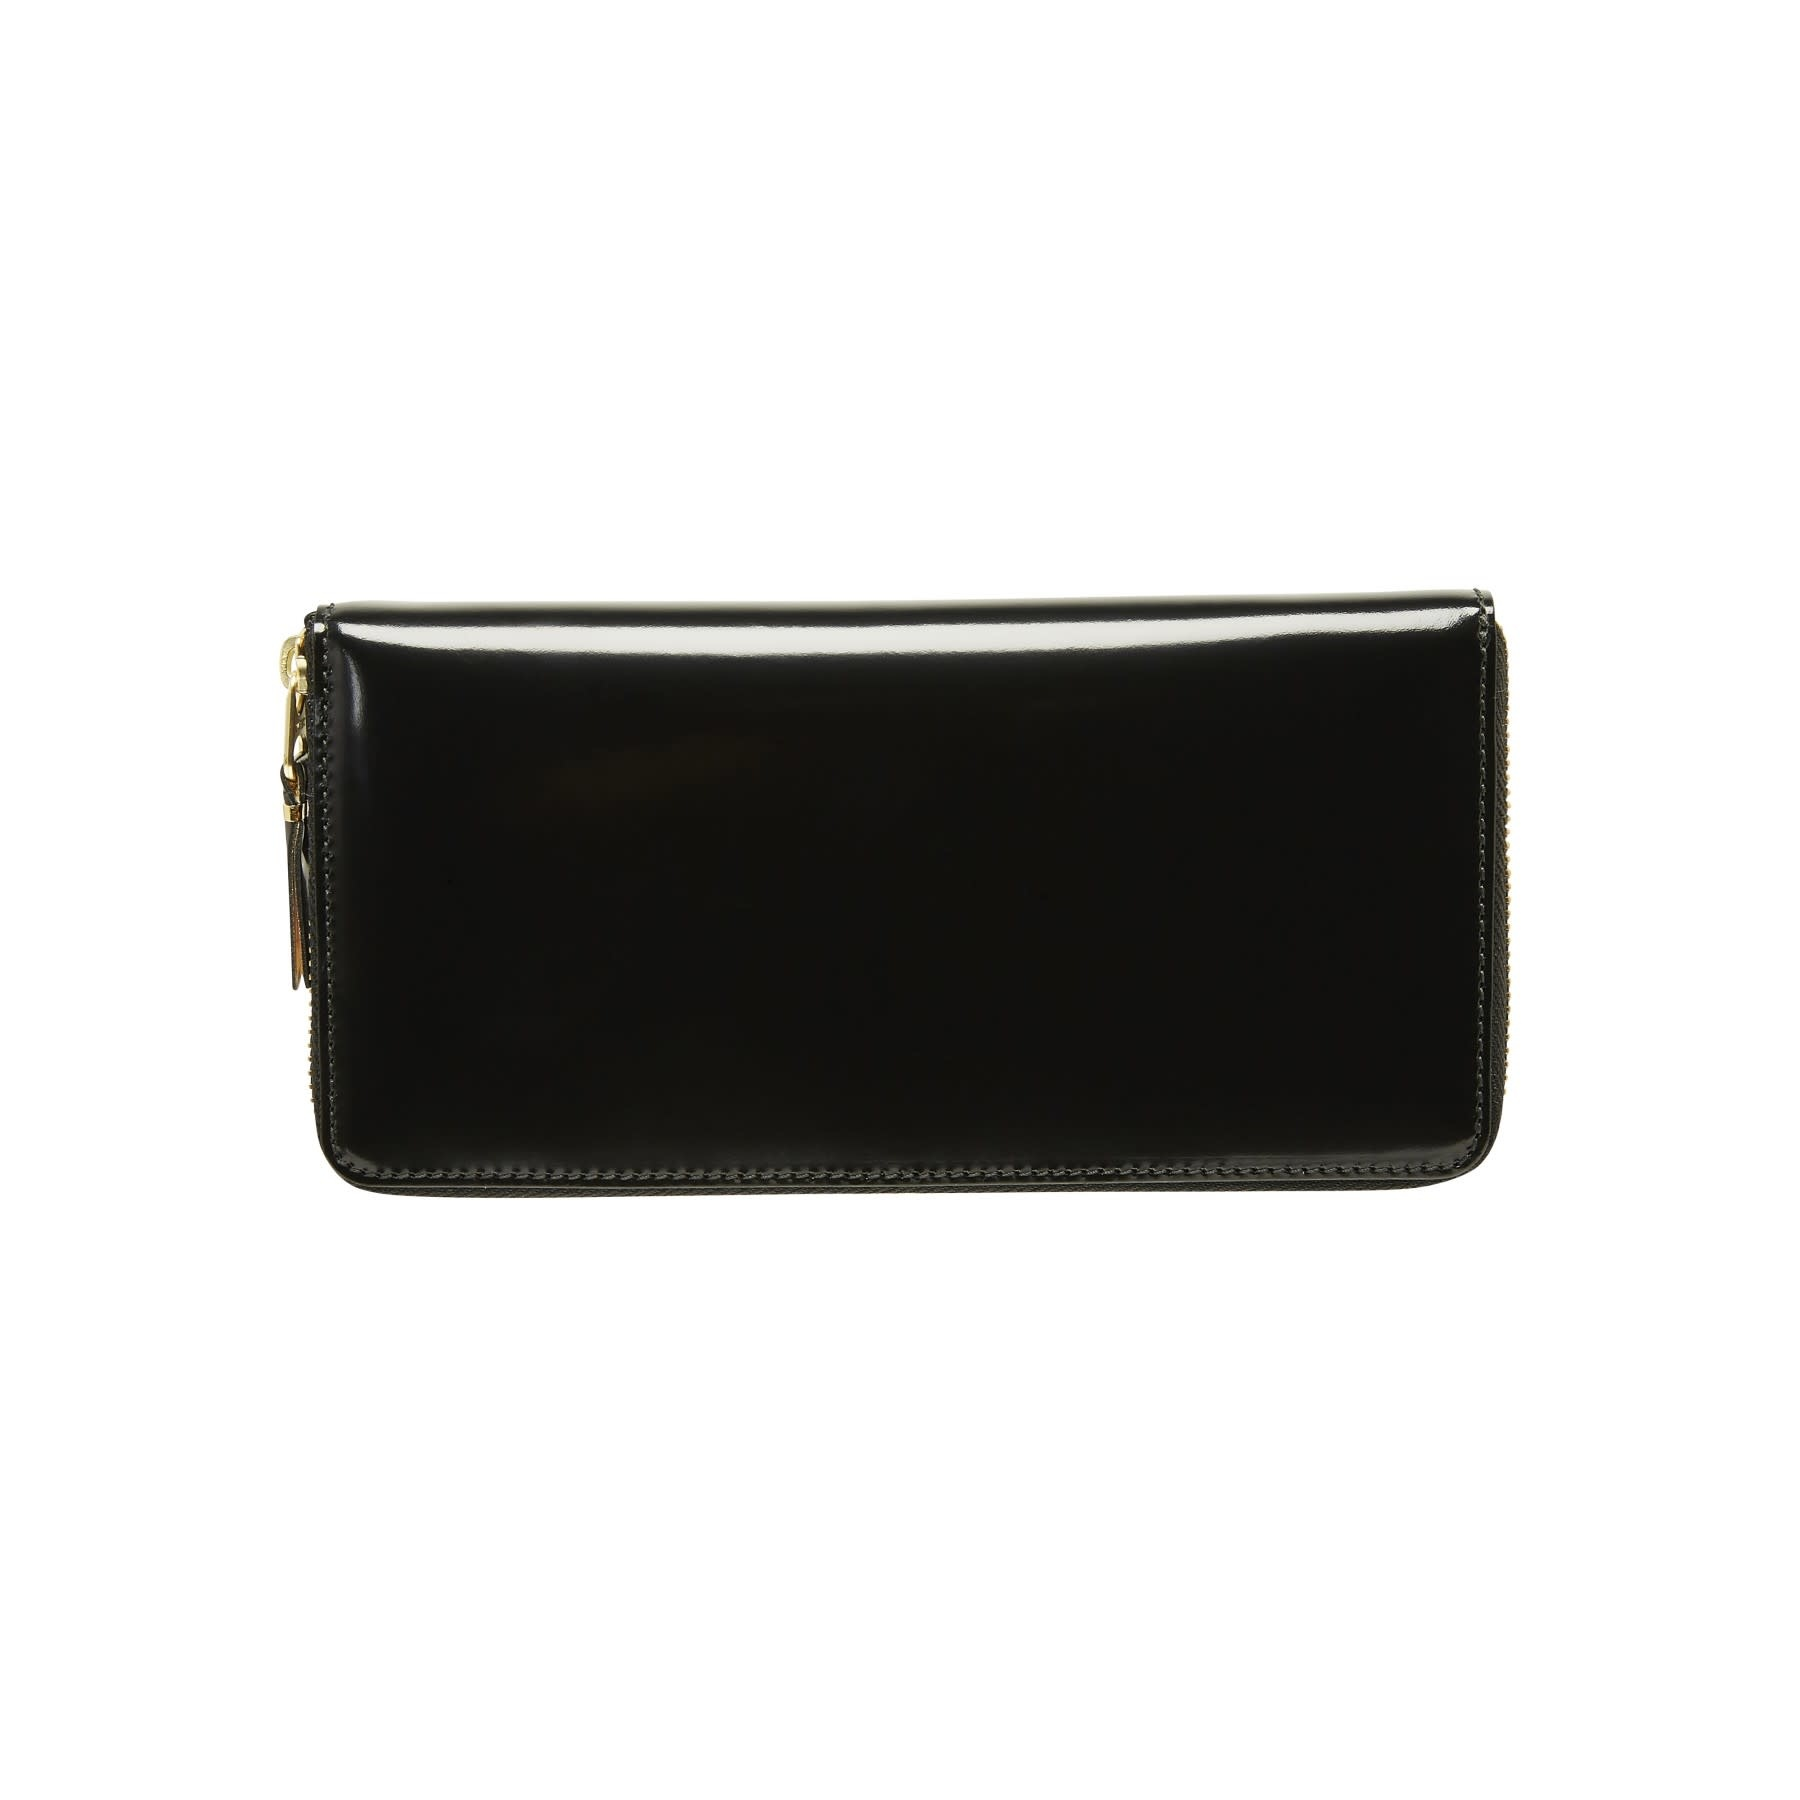 COMME des GARÇONS Wallet Large Mirror Inside Wallet Black/Gold